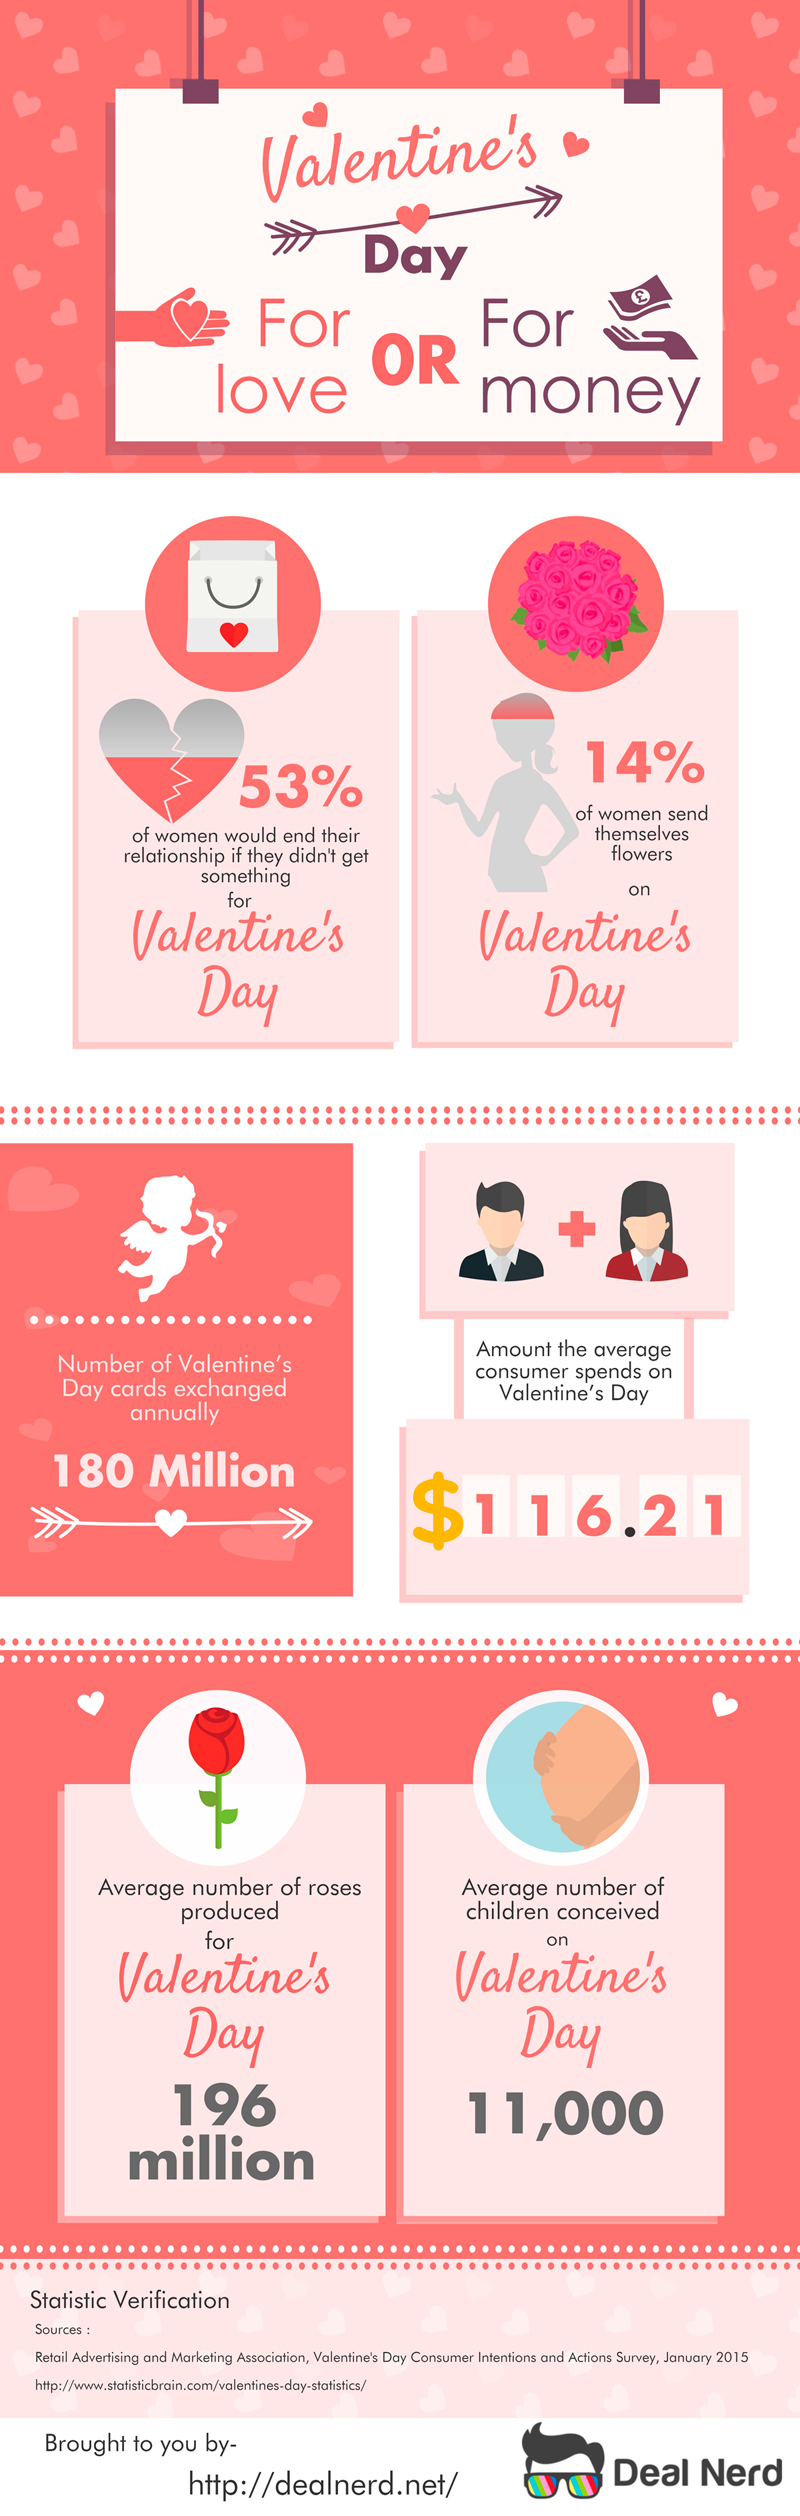 Valentine's Day For Love or For Money